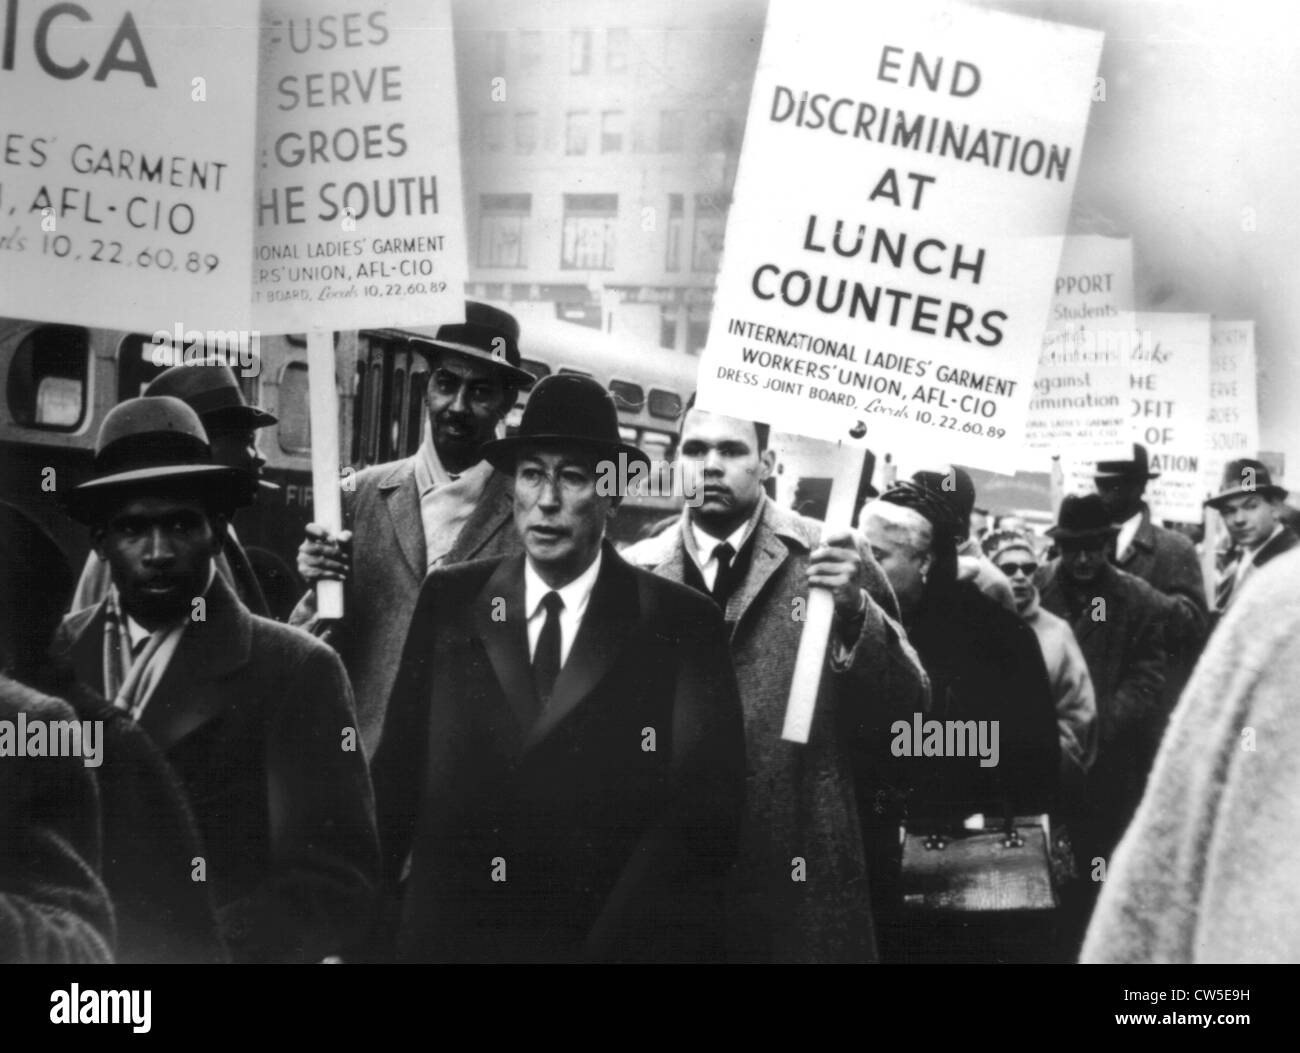 Demonstration for the civil rights - Stock Image